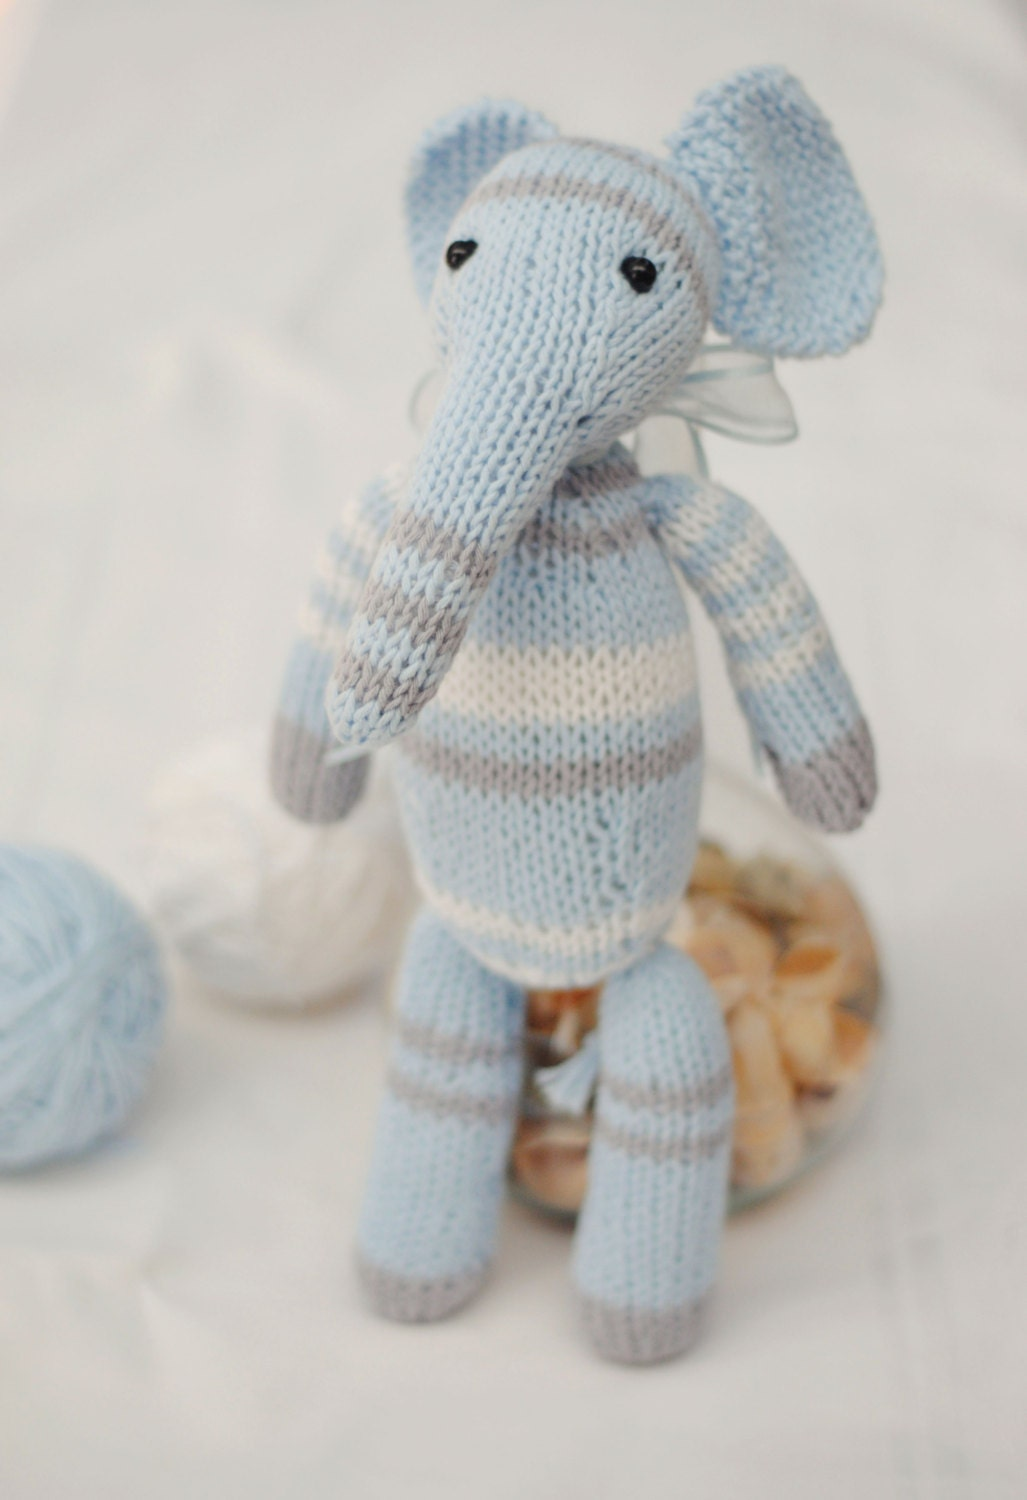 Knitting Toys For Babies : Stuffed elephant knit animal knitted toys plush